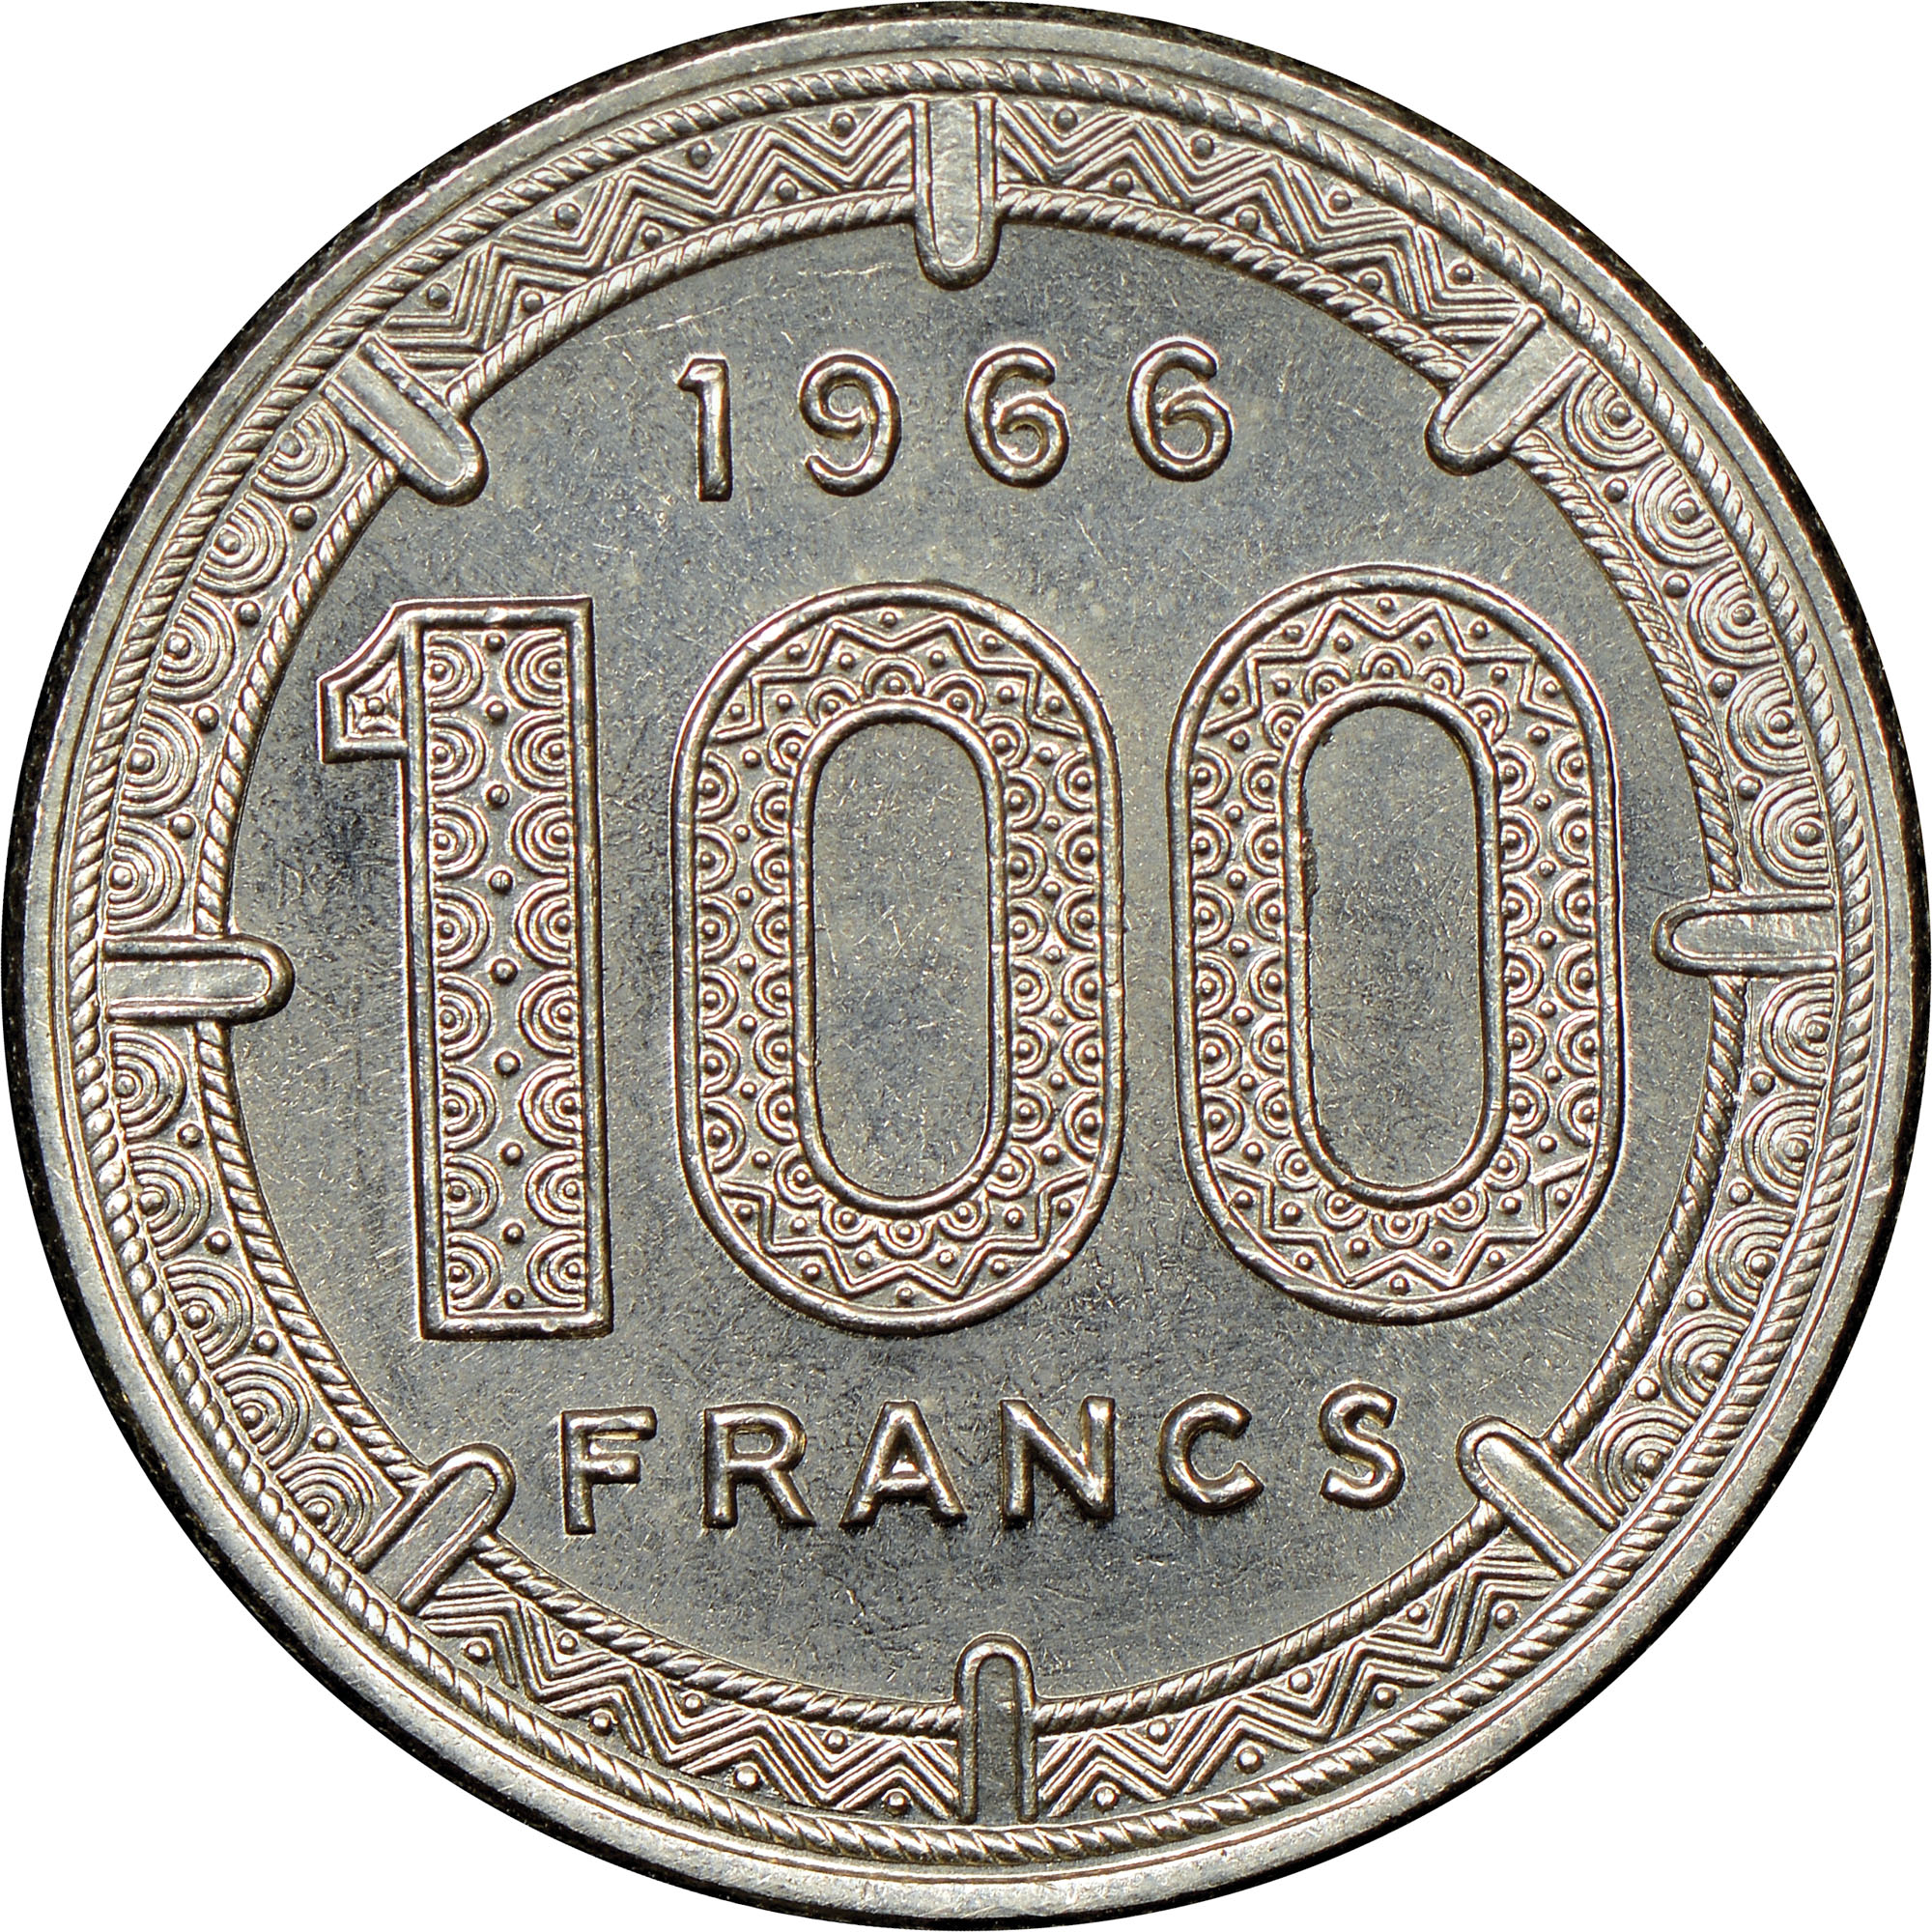 Cameroon 100 Francs reverse